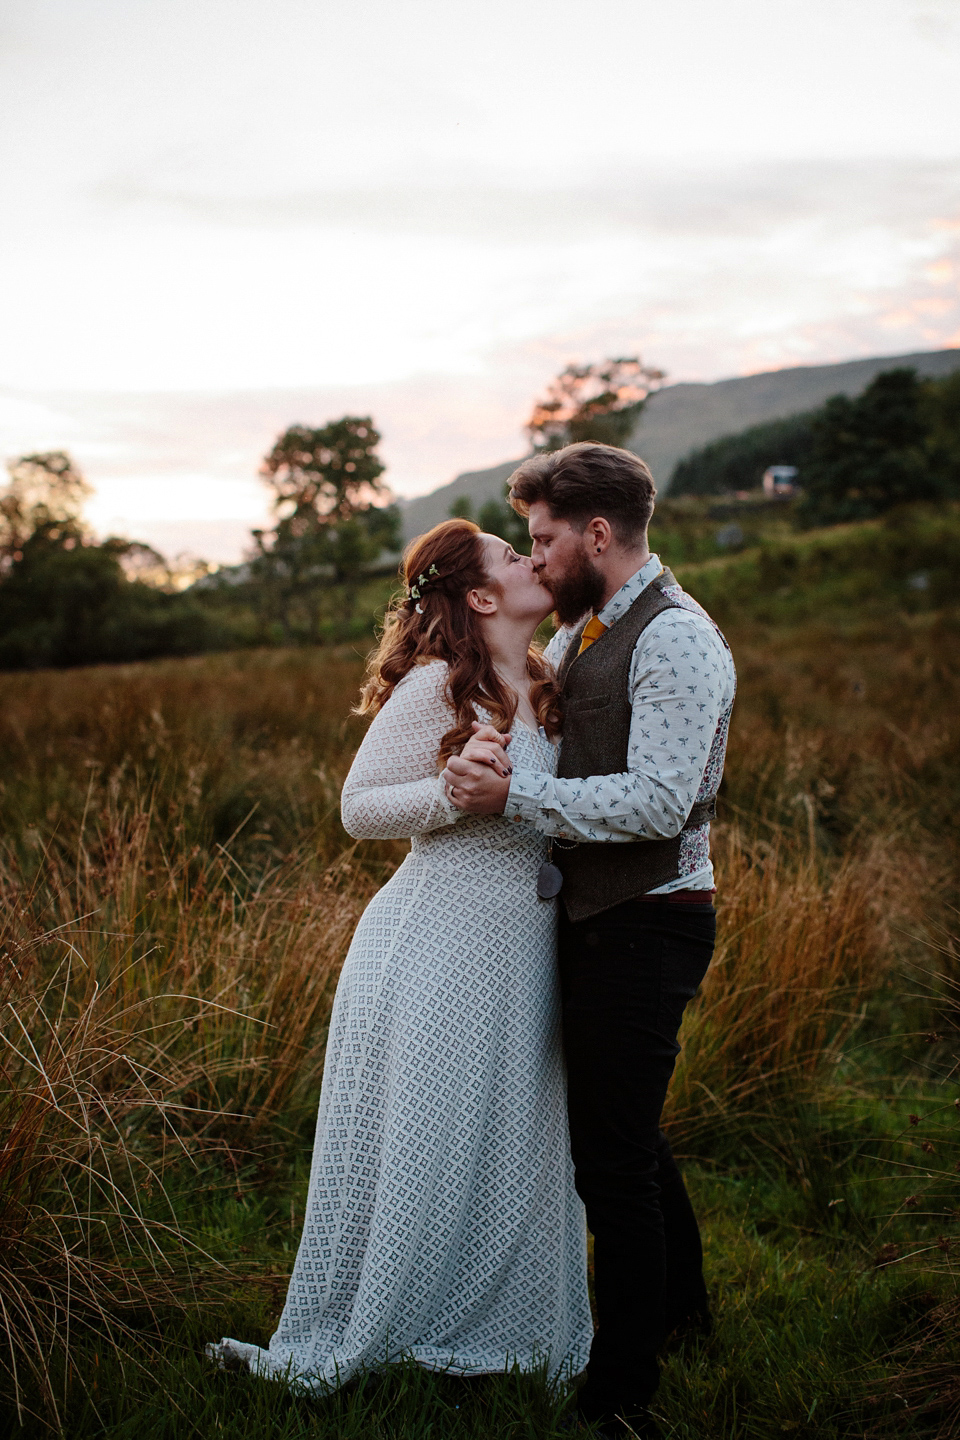 A 1970s and Icelandic Inspired Bohemian Wedding in Remote Scotland (Weddings )